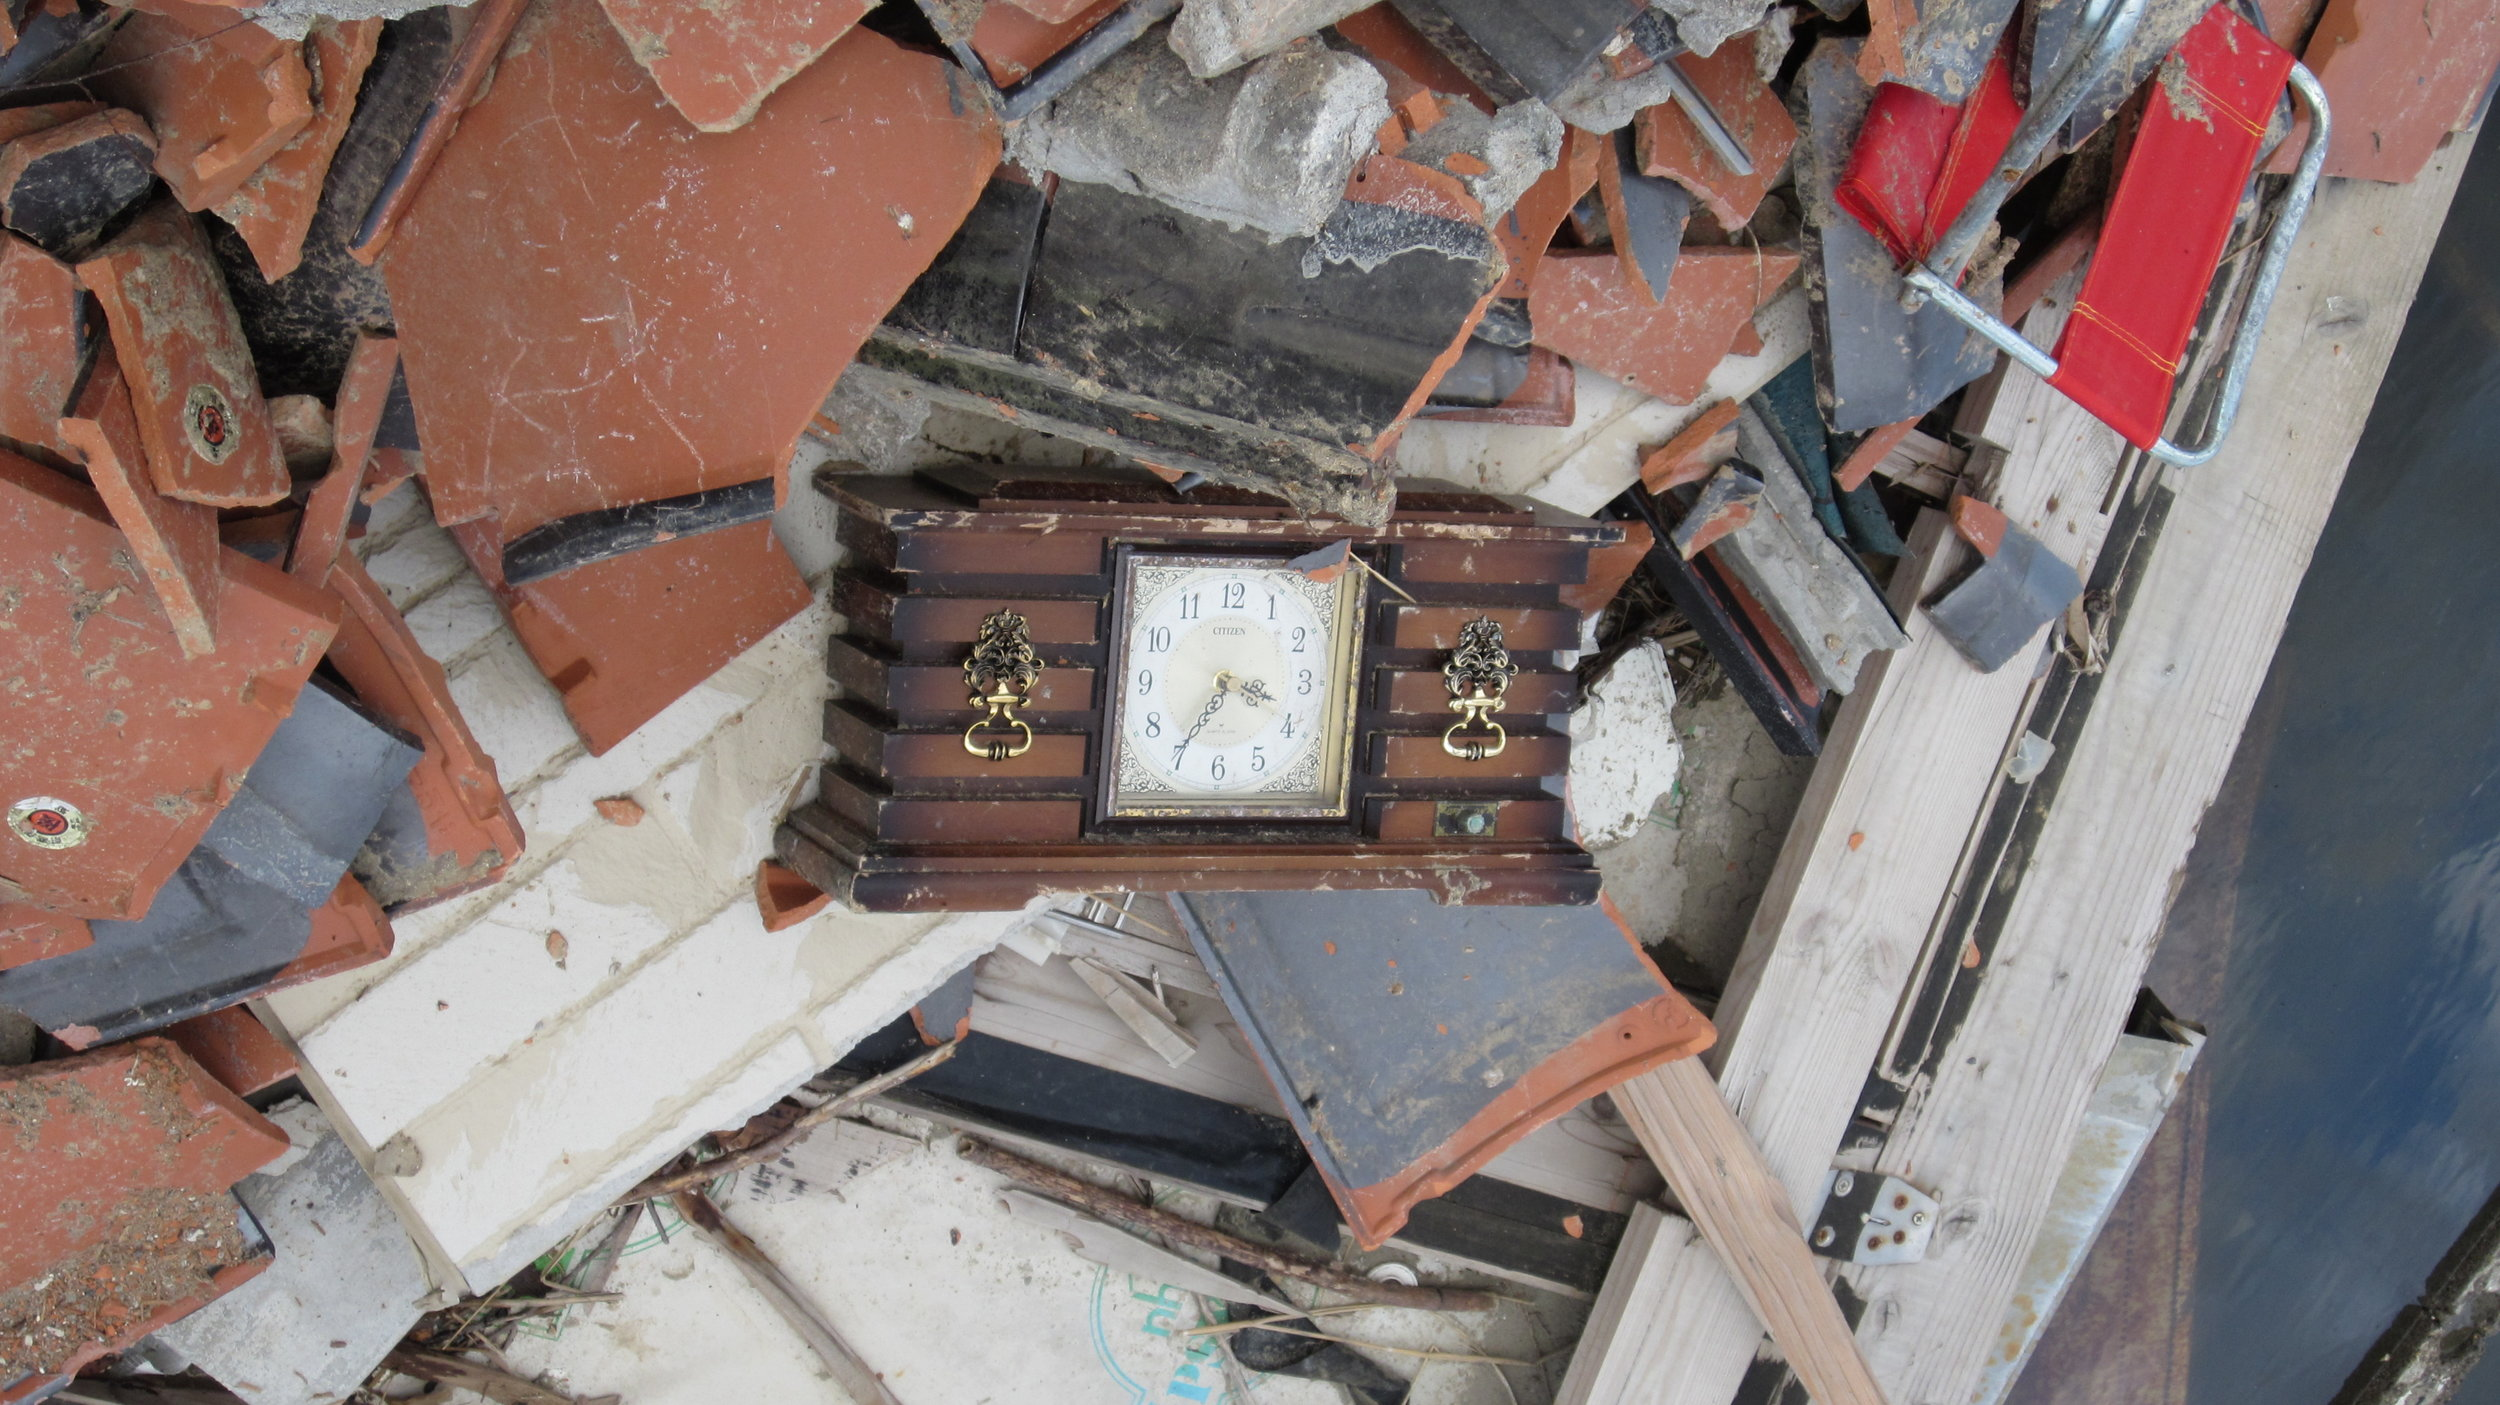 A clock rests amidst debris - the time reads 3:35, likely the time at which it was submerged by the tsunami